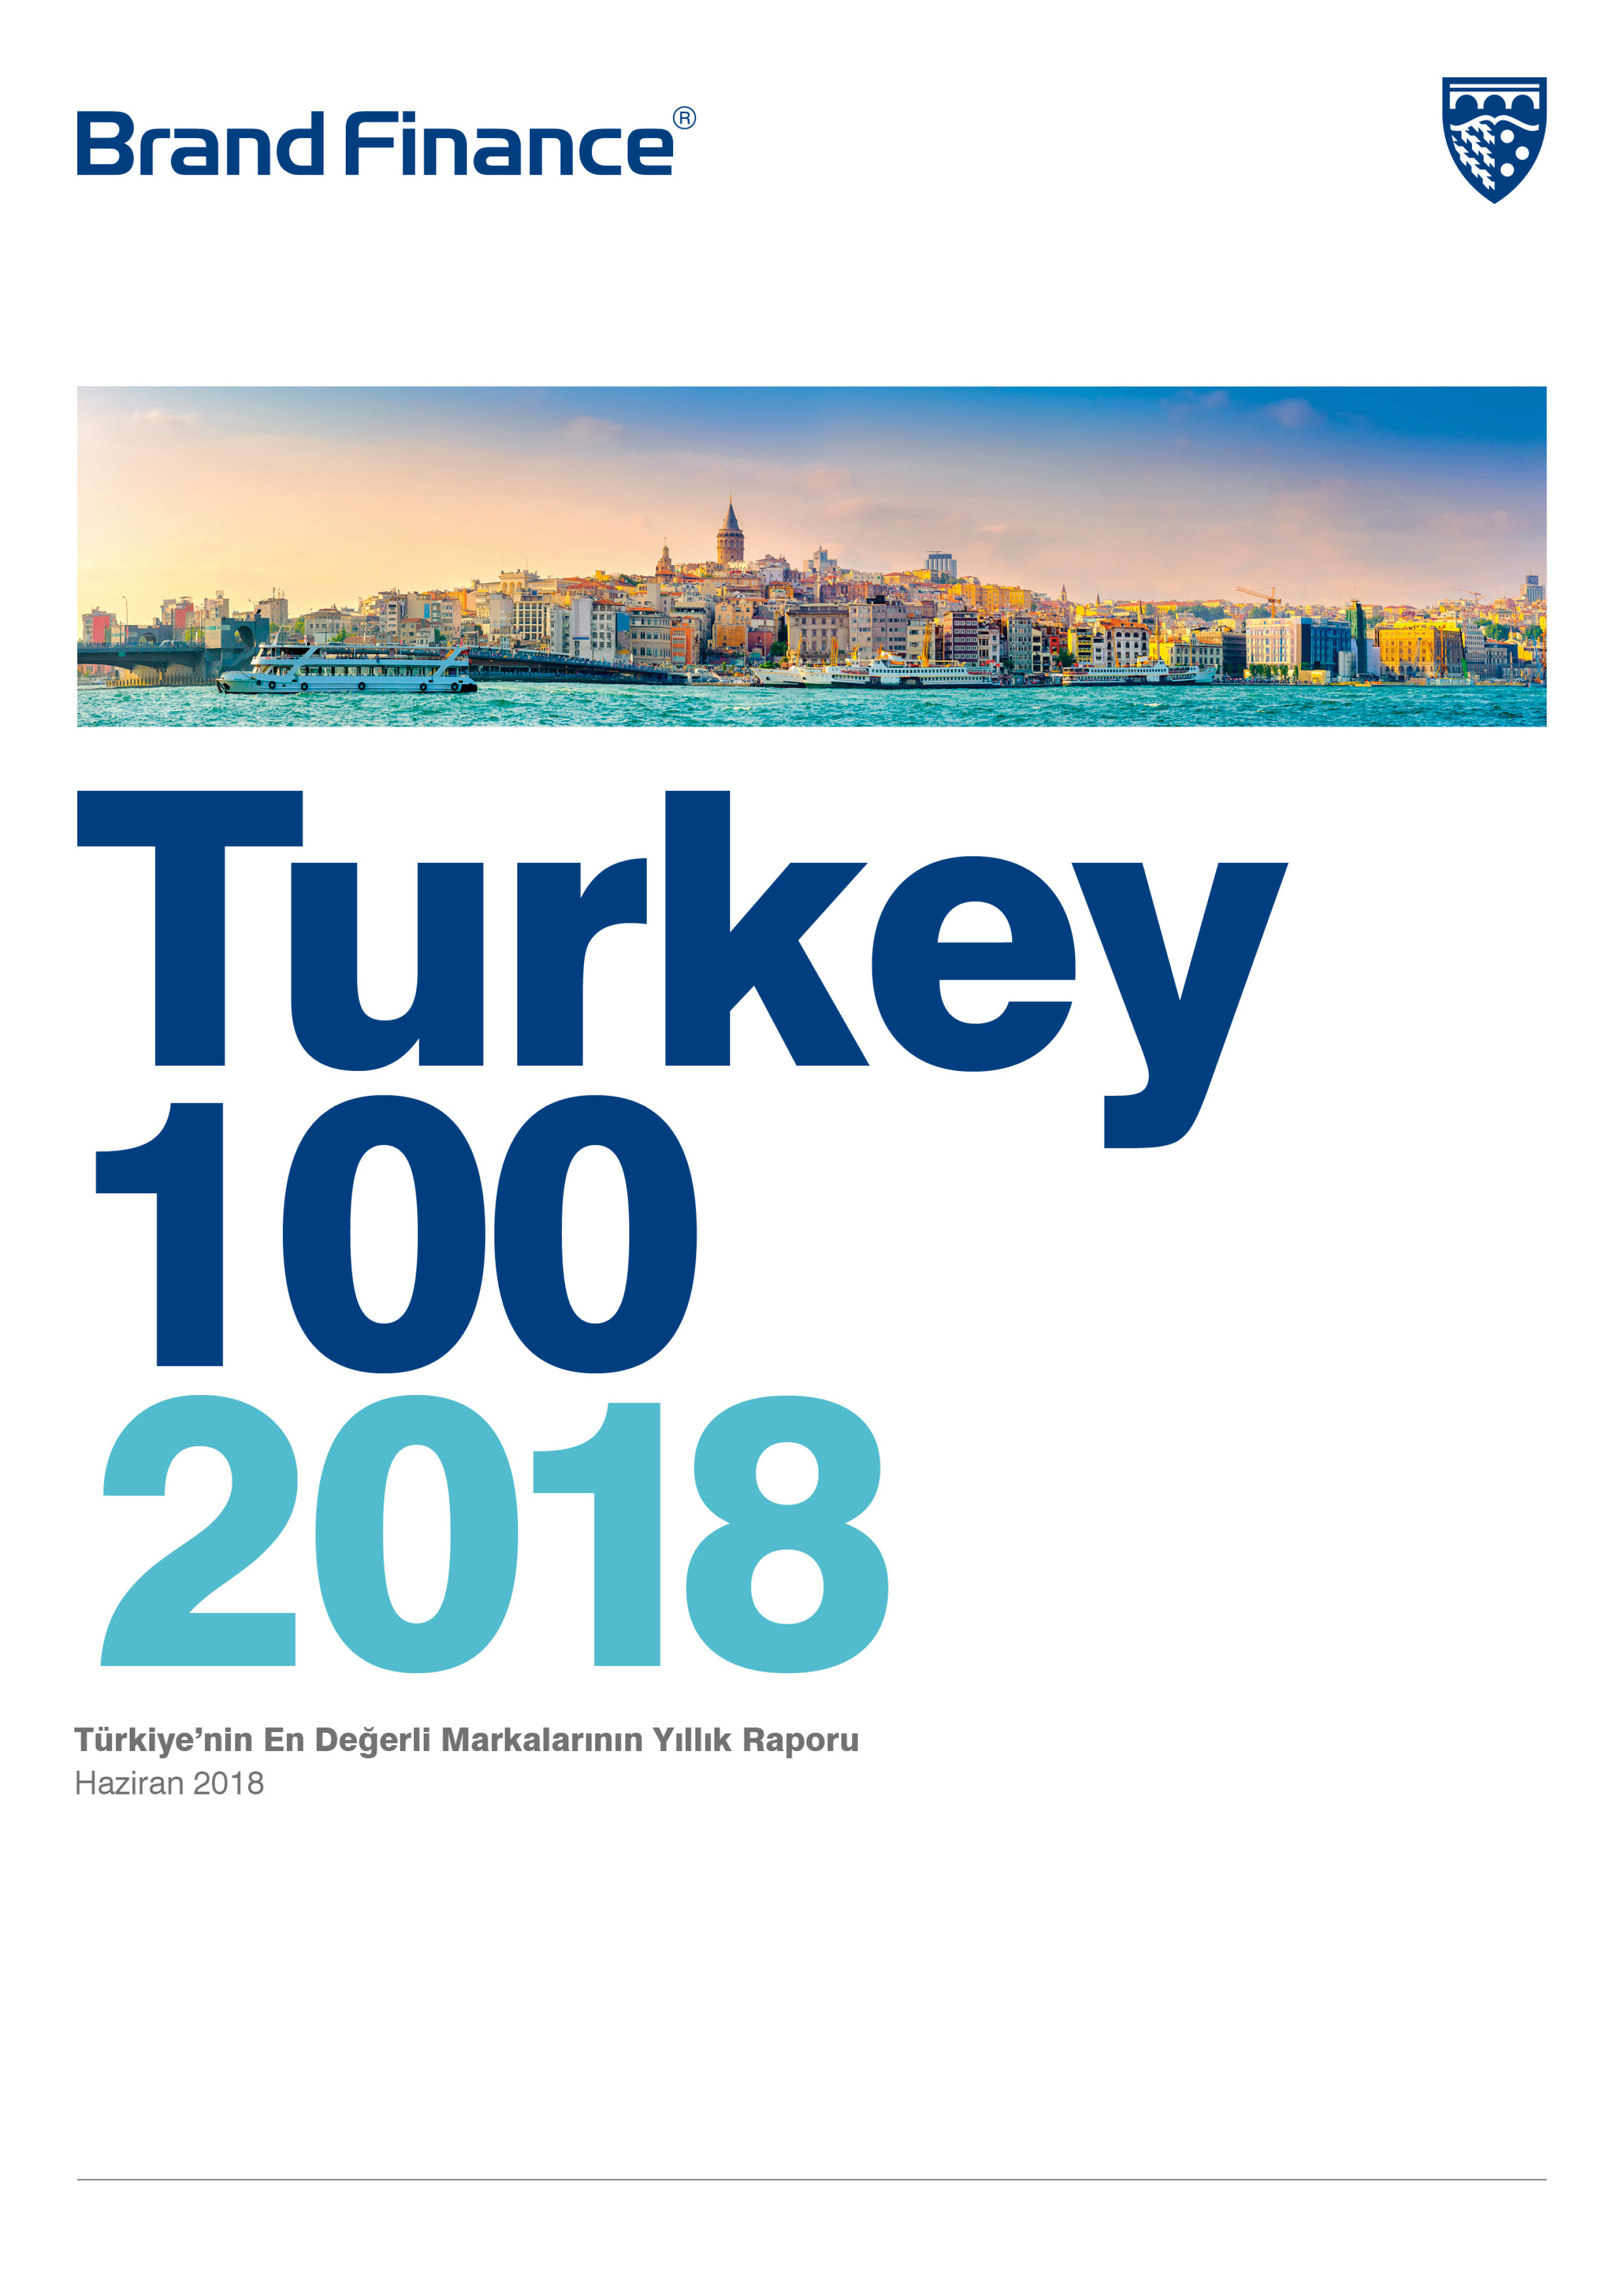 Brand Finance Turkey 100 2018